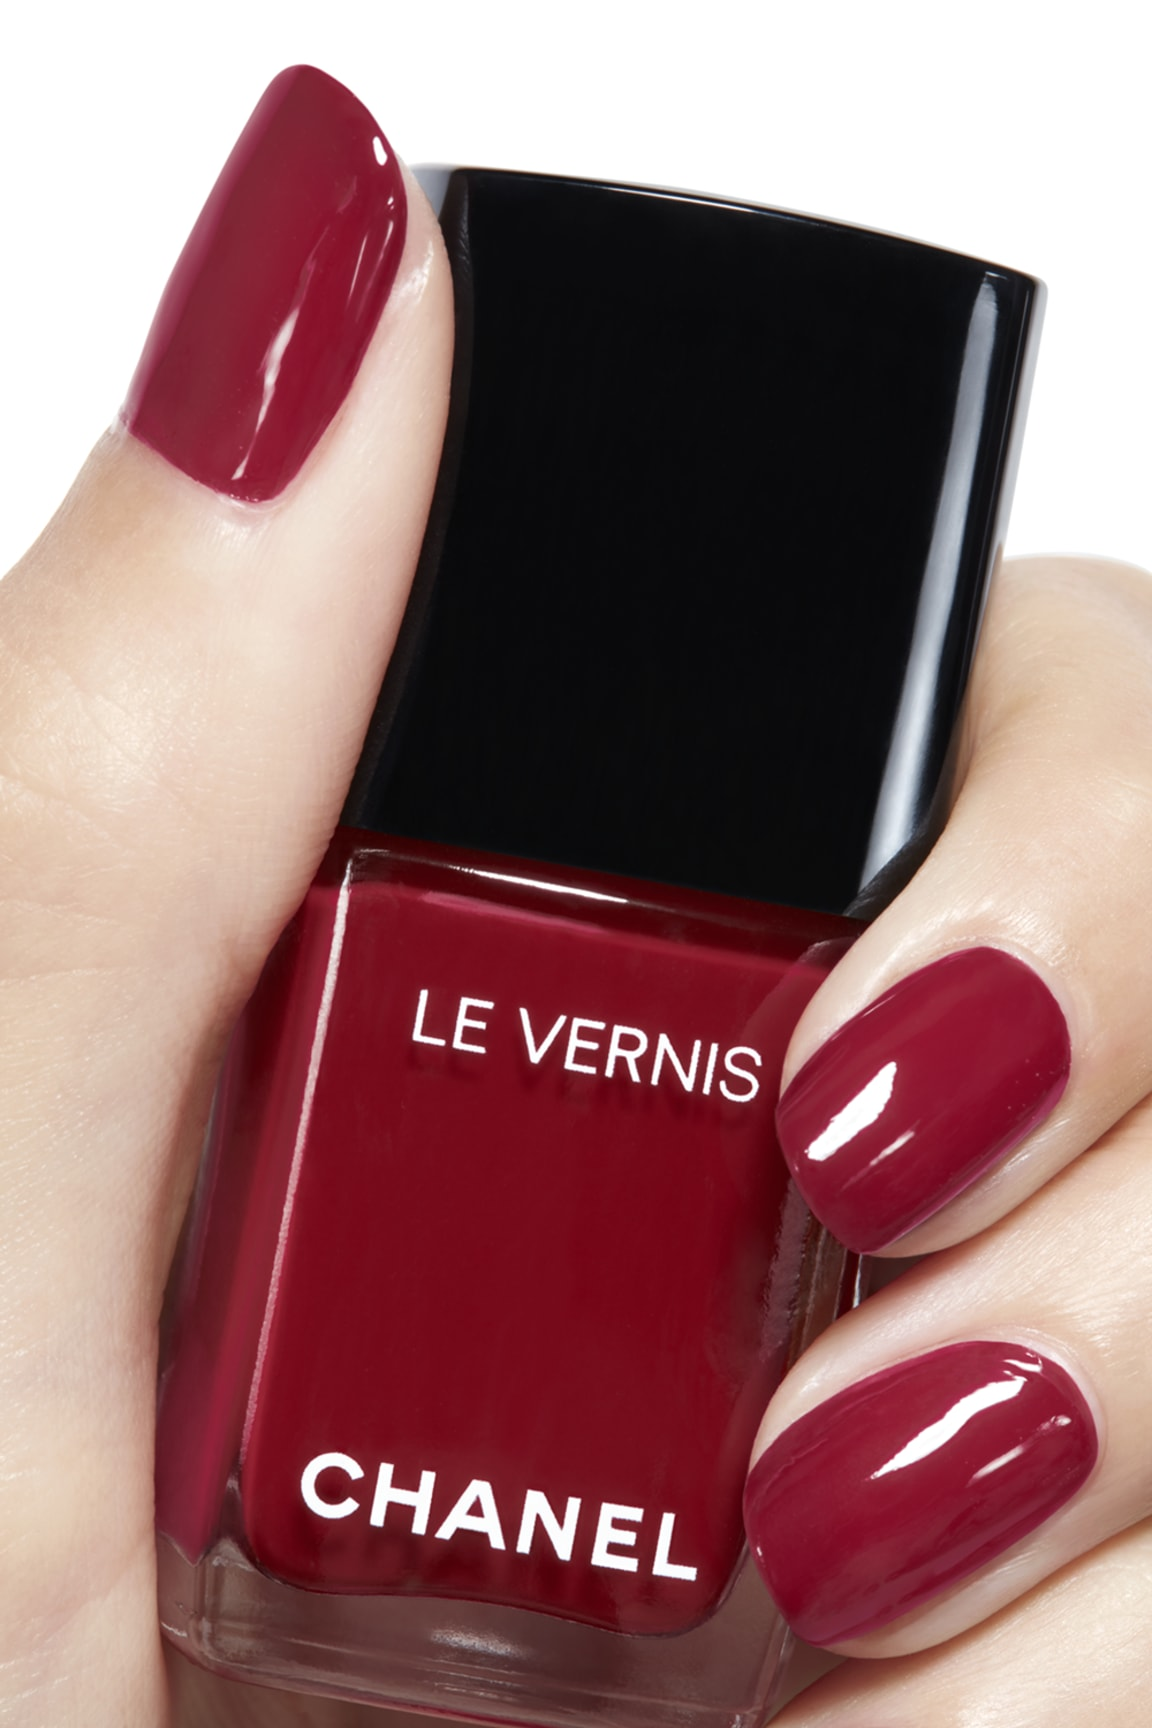 Application makeup visual 2 - LE VERNIS 08 - PIRATE